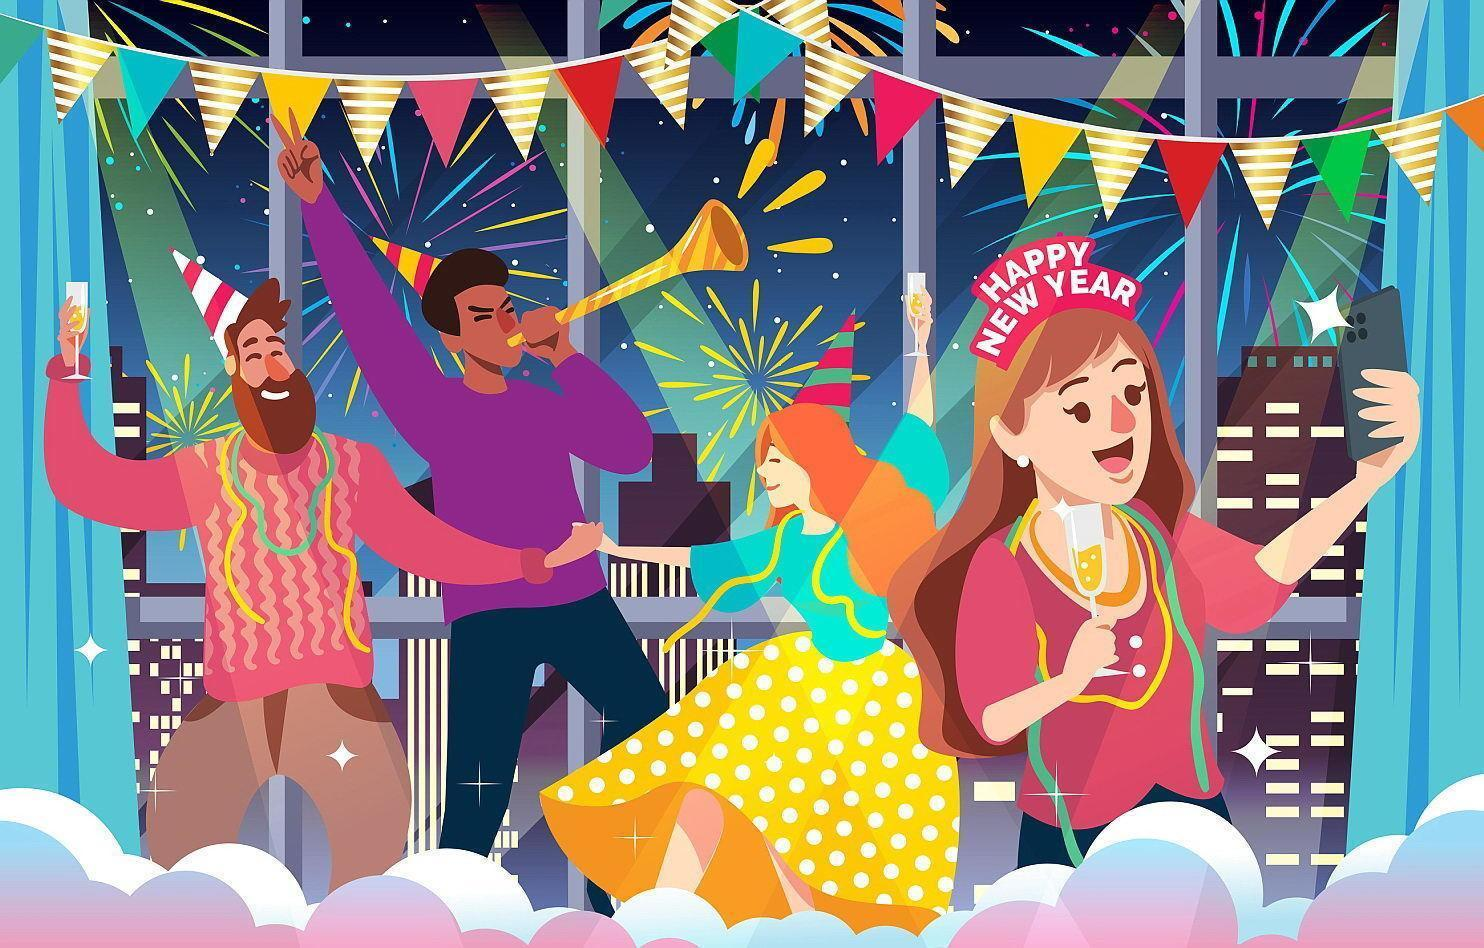 People Celebrating New Year Indoor Party Illustration vector